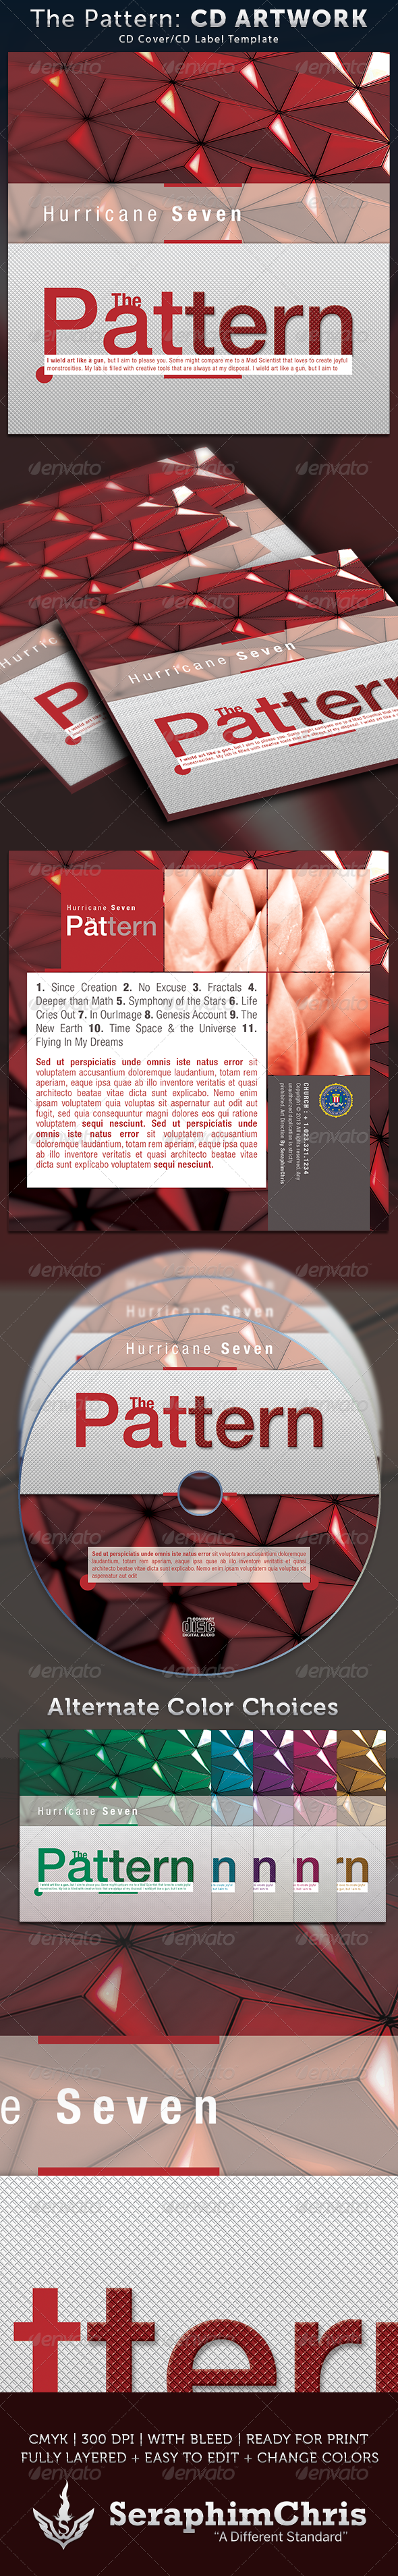 The Pattern CD Cover Artwork Template - CD & DVD Artwork Print Templates